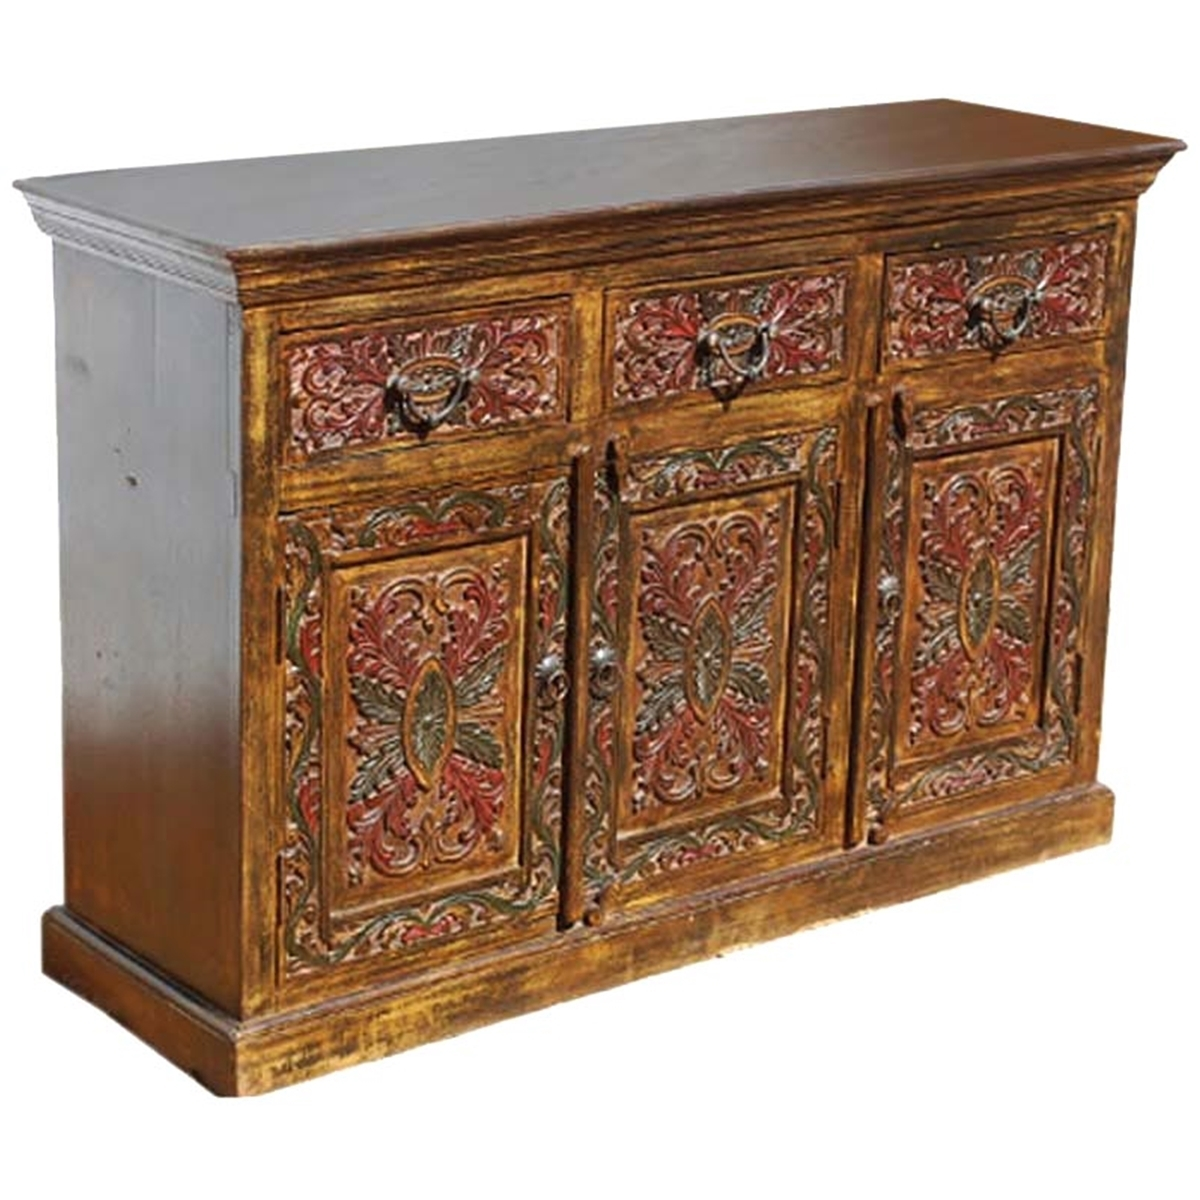 Canterbury Handcarved Solid Wood 3 Drawer Sideboard pertaining to Starburst 3 Door Sideboards (Image 5 of 30)